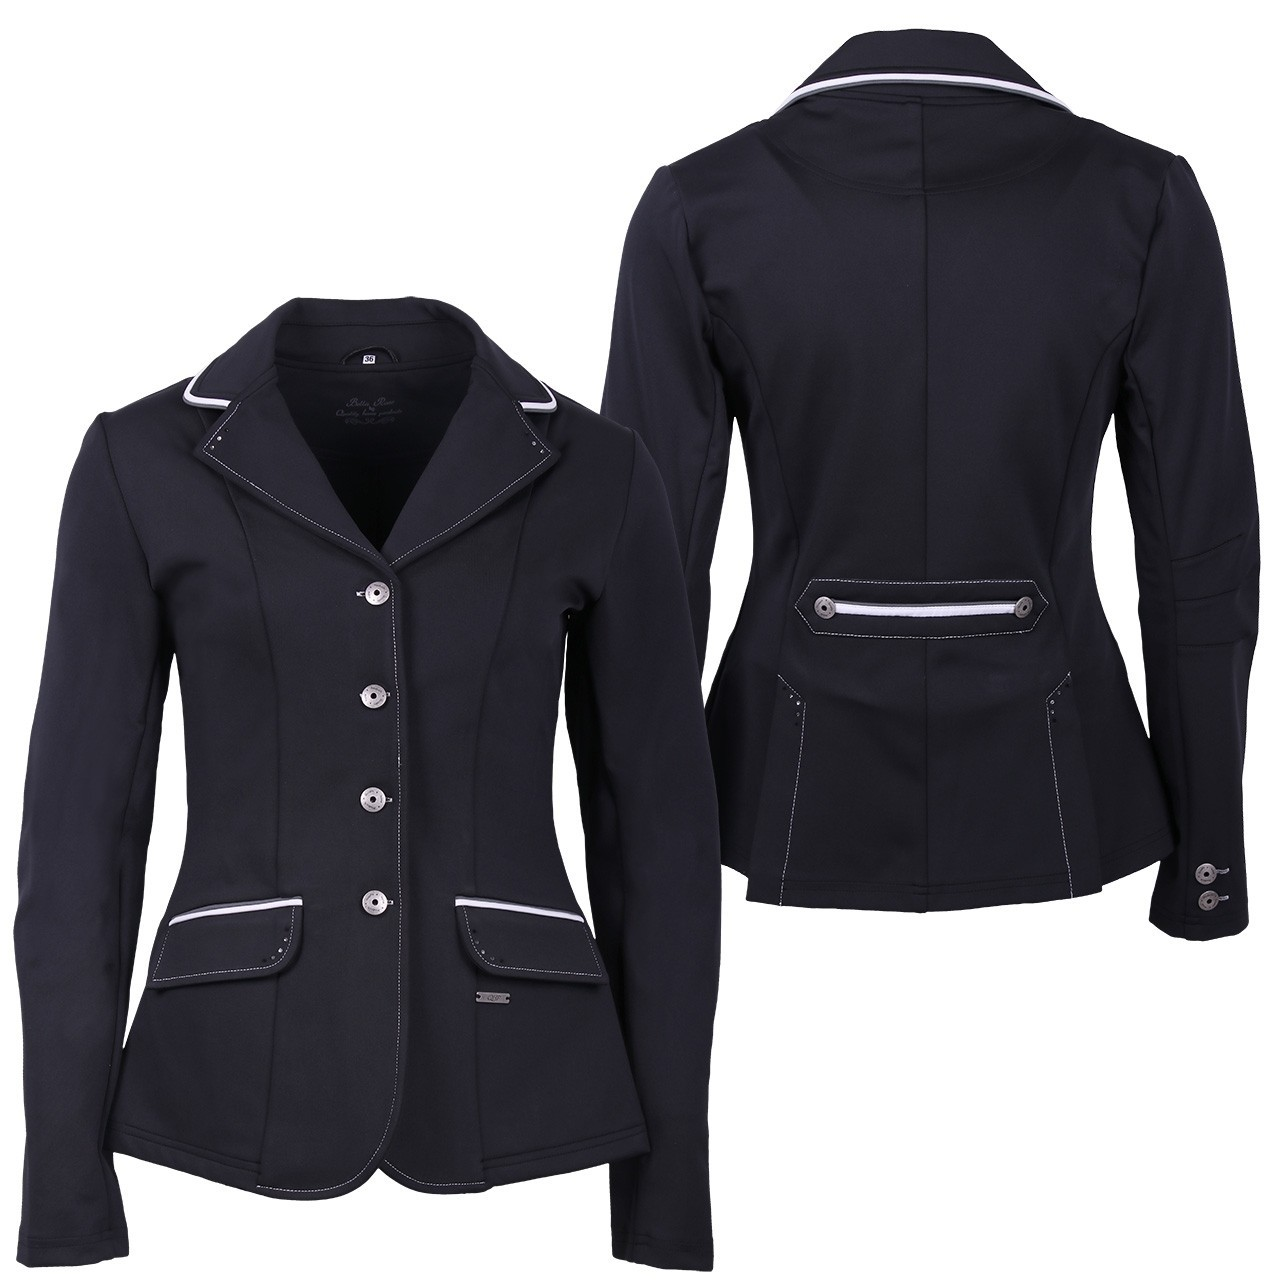 QHP Coco Junior Competition Jackets